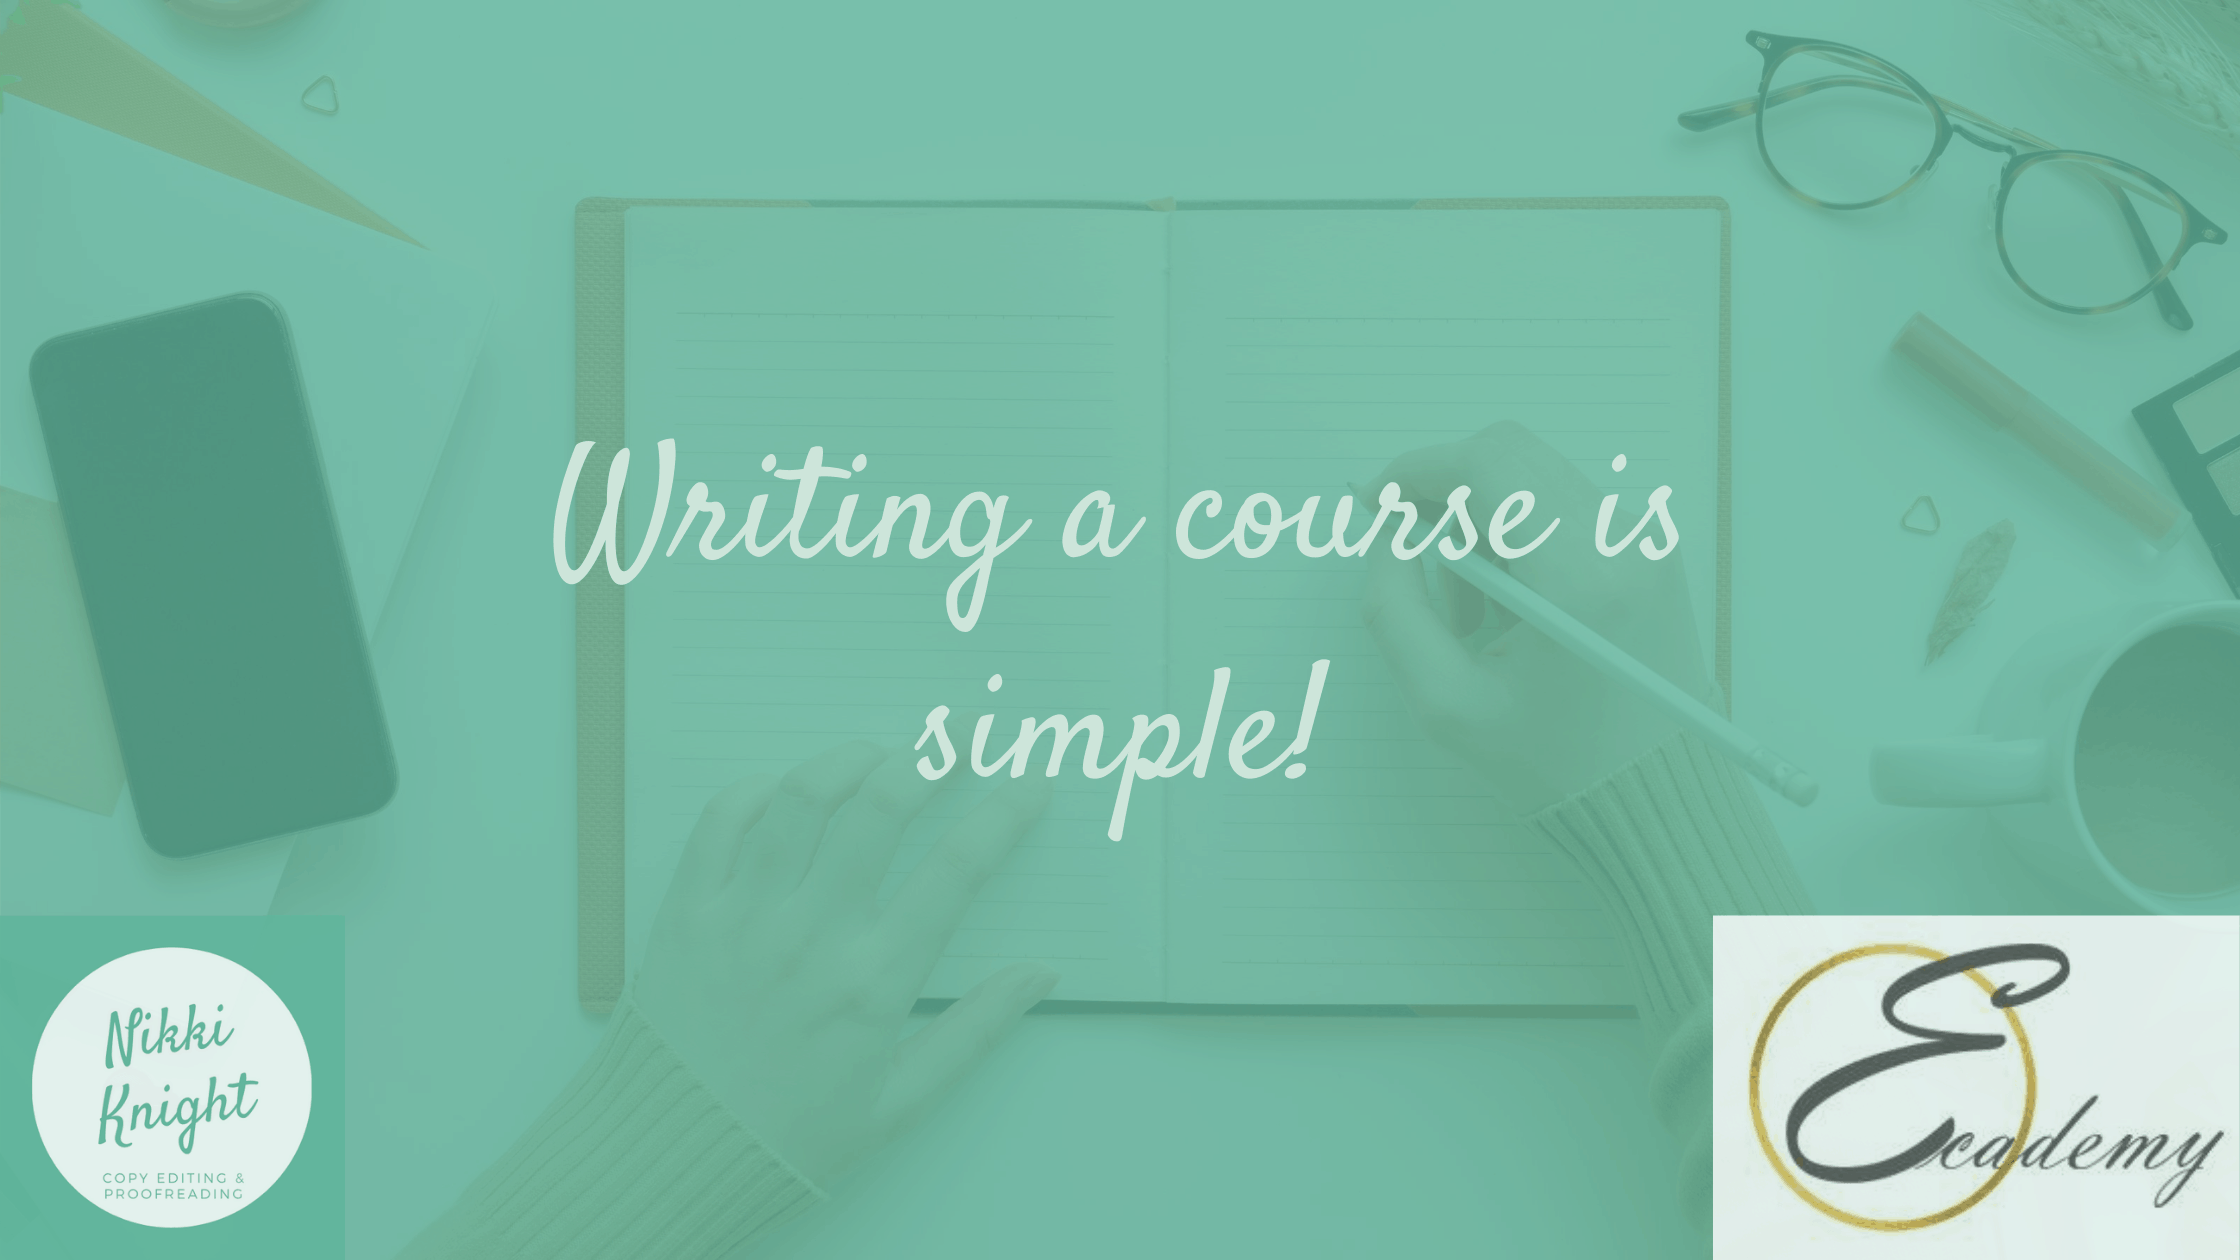 Writing a course is simple! By Nikki Glover, Ecademy Digital.